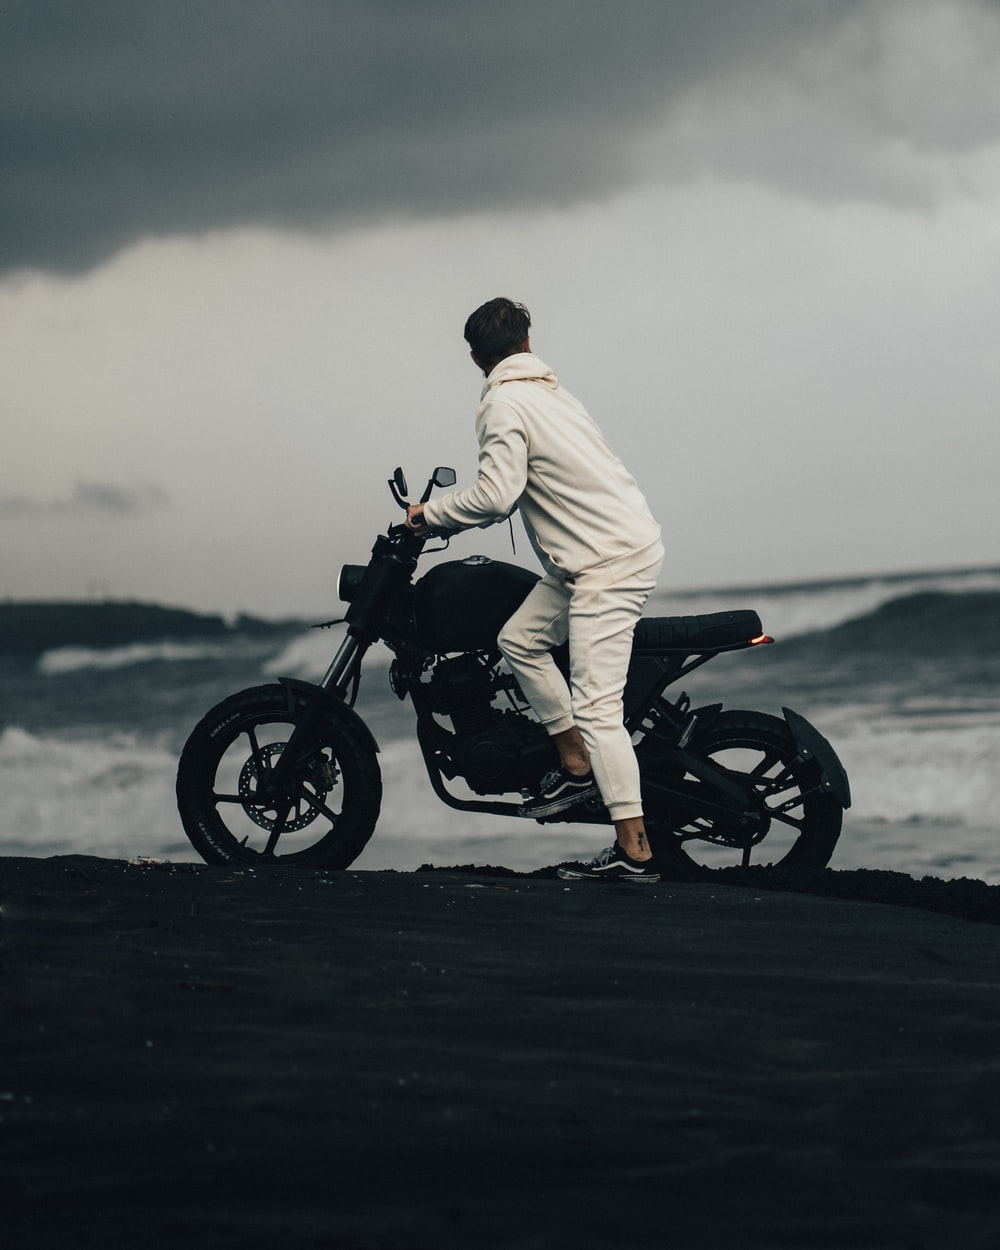 man in white robe riding black motorcycle